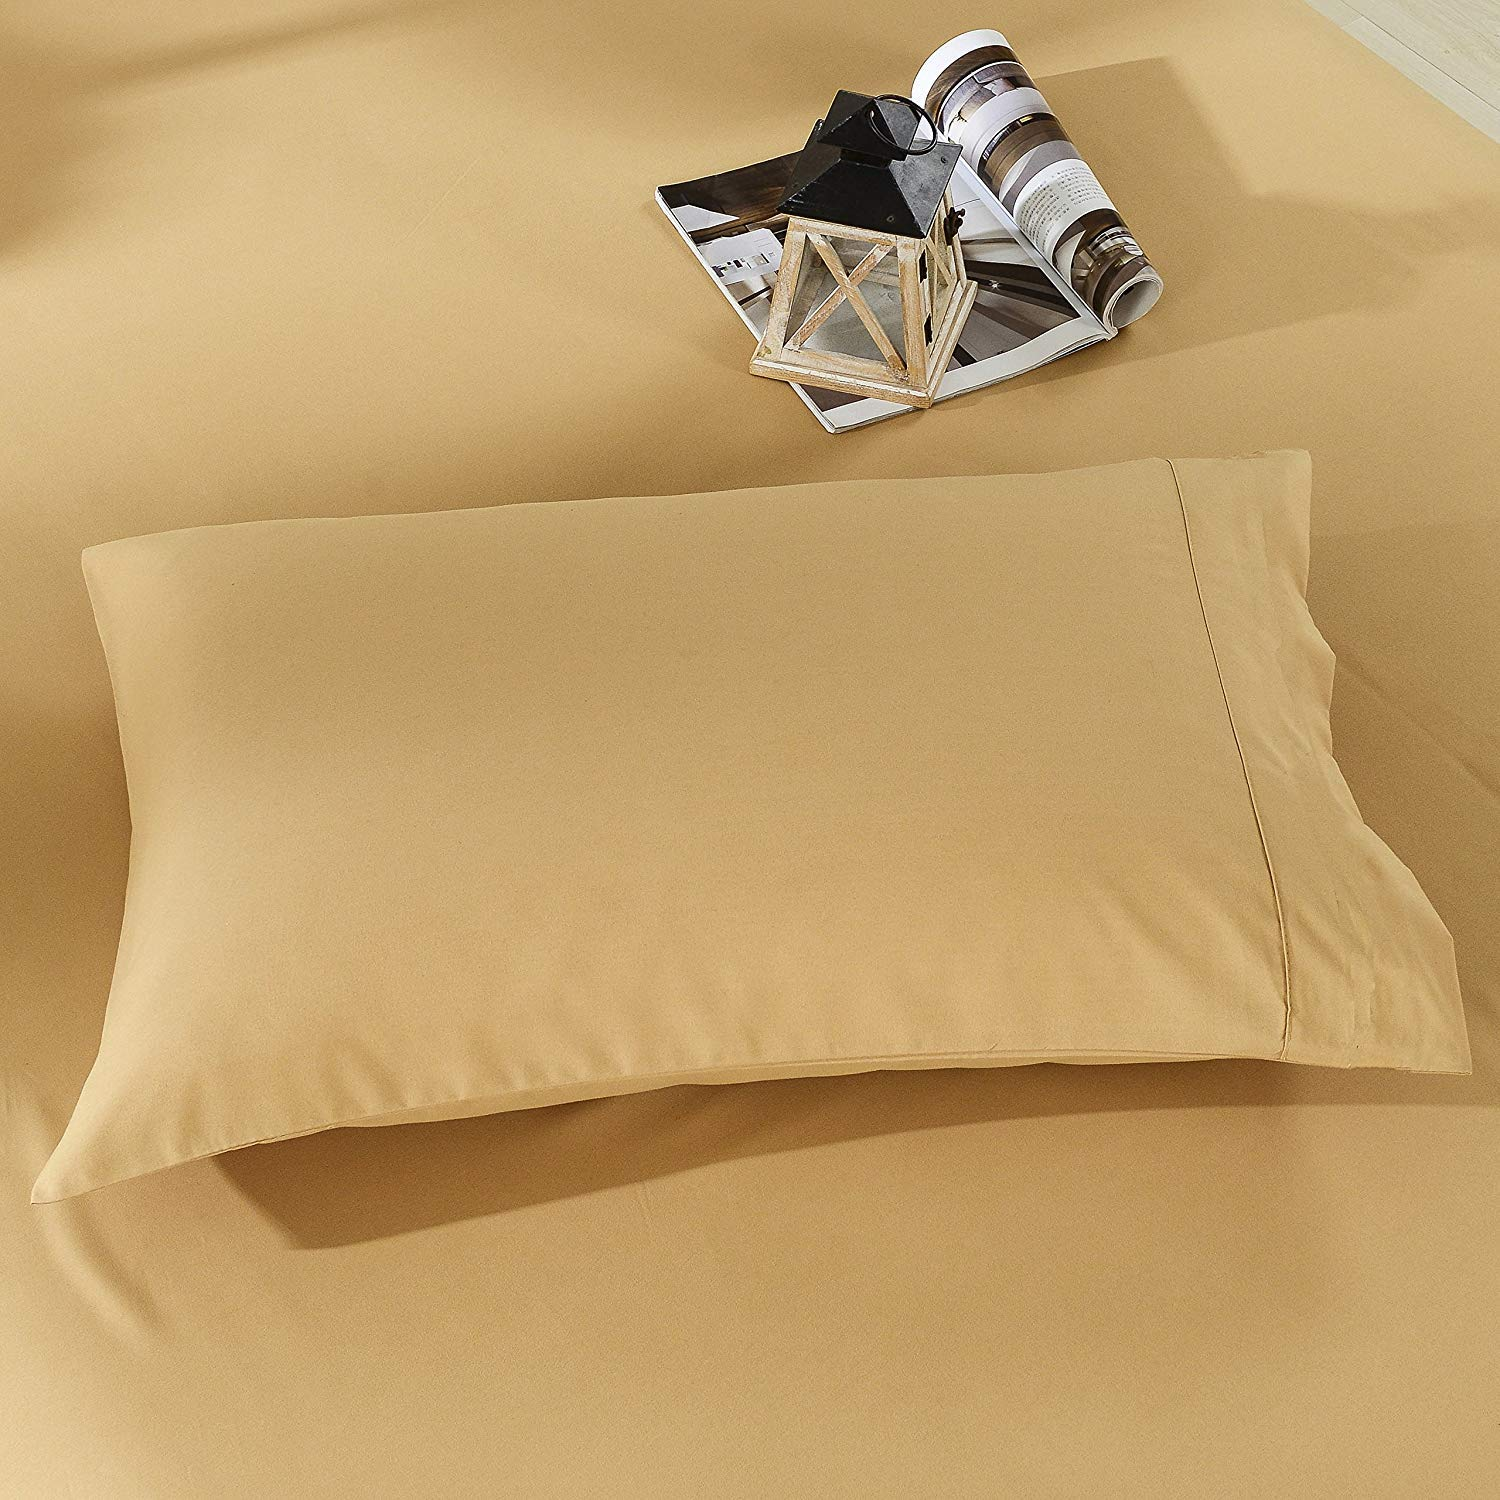 VGI Linen Authentic Heavy Quality Hotel Collection 100% Egyptian Cotton- Super Soft 1500 Thread Count 2-PCs Pillow Cases Solid Style Available in Many Sizes & Color's (King, Gold)